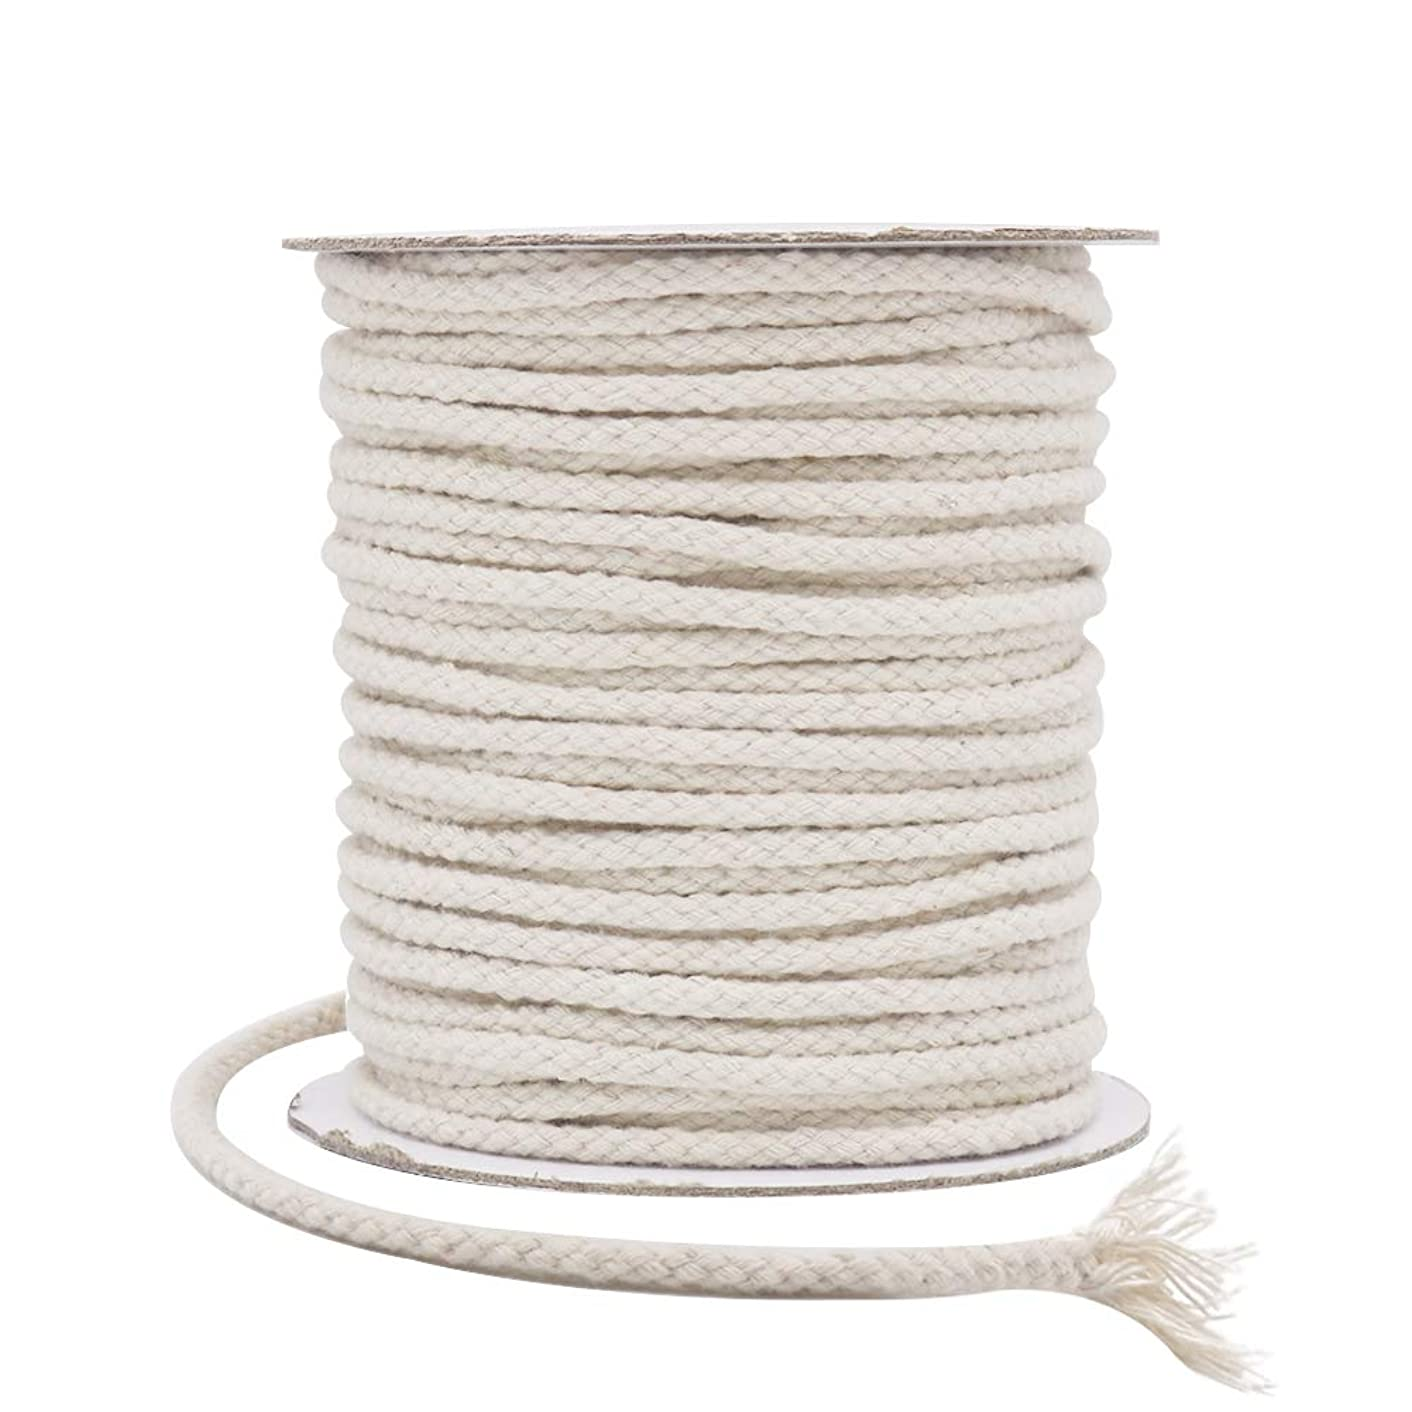 Tenn Well 5mm Macrame Cord, 165Feet Braided Cotton Macrame Rope for Plant Hangers Wall Hangings Dream Catchers DIY Crafts (Beige)